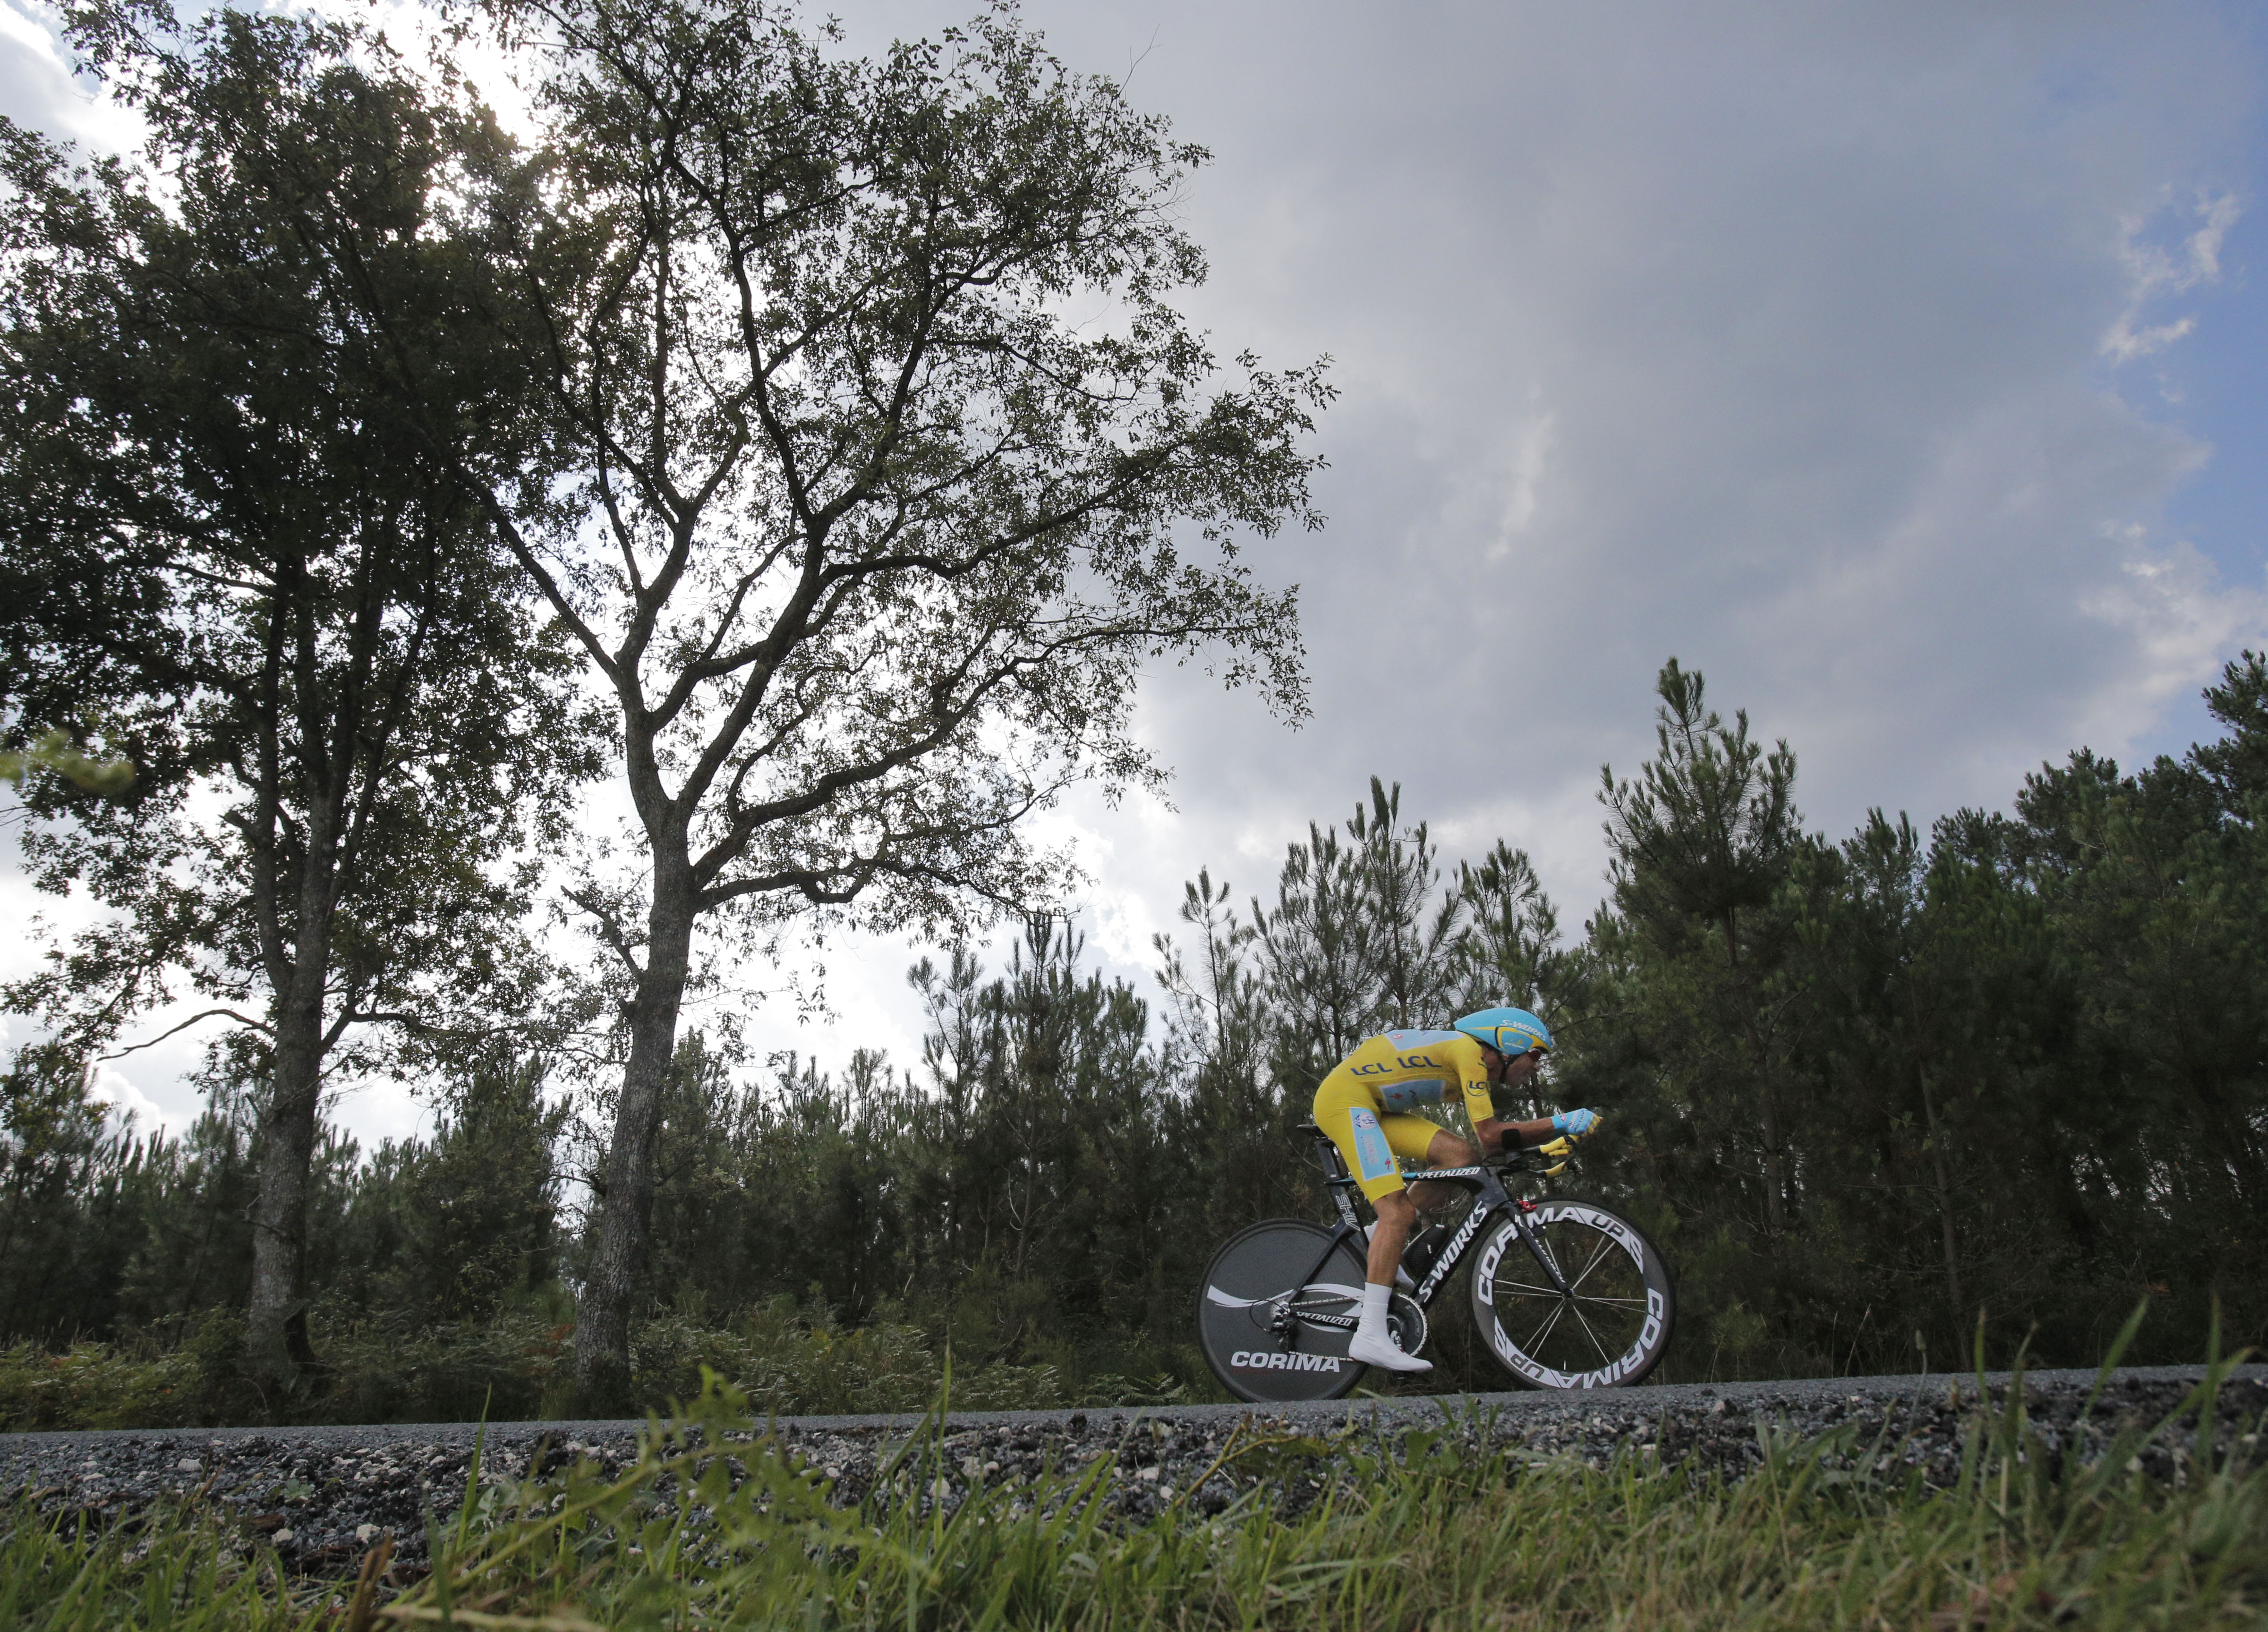 Italy's Vincenzo Nibali, wearing the overall leader's yellow jersey, strains during the twentieth stage.